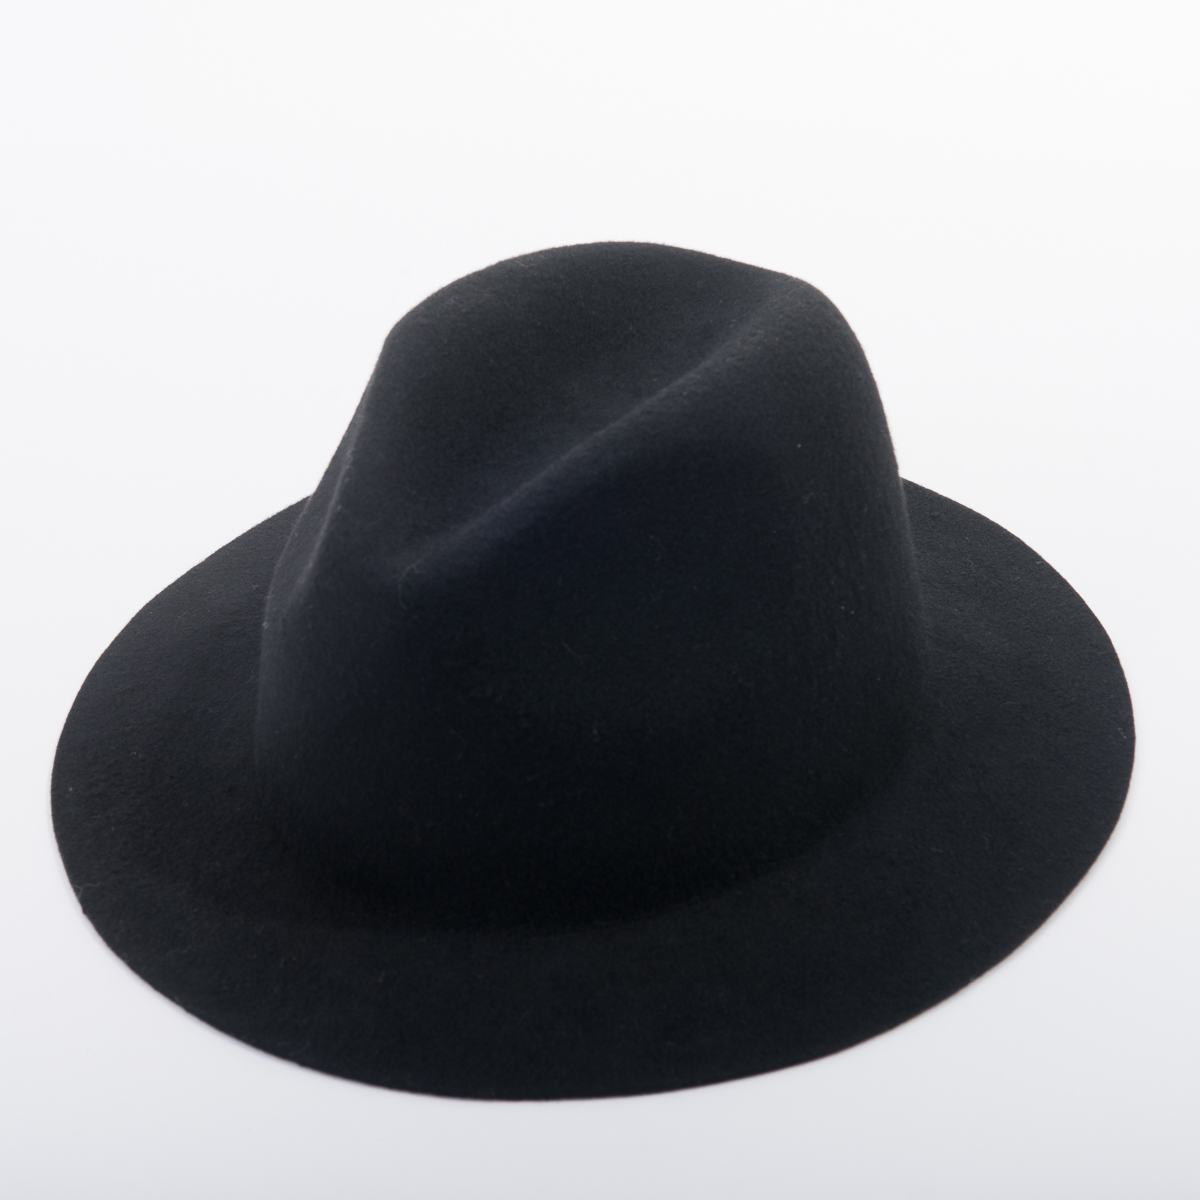 Make a Wide Brim Fedora Using a Jacket